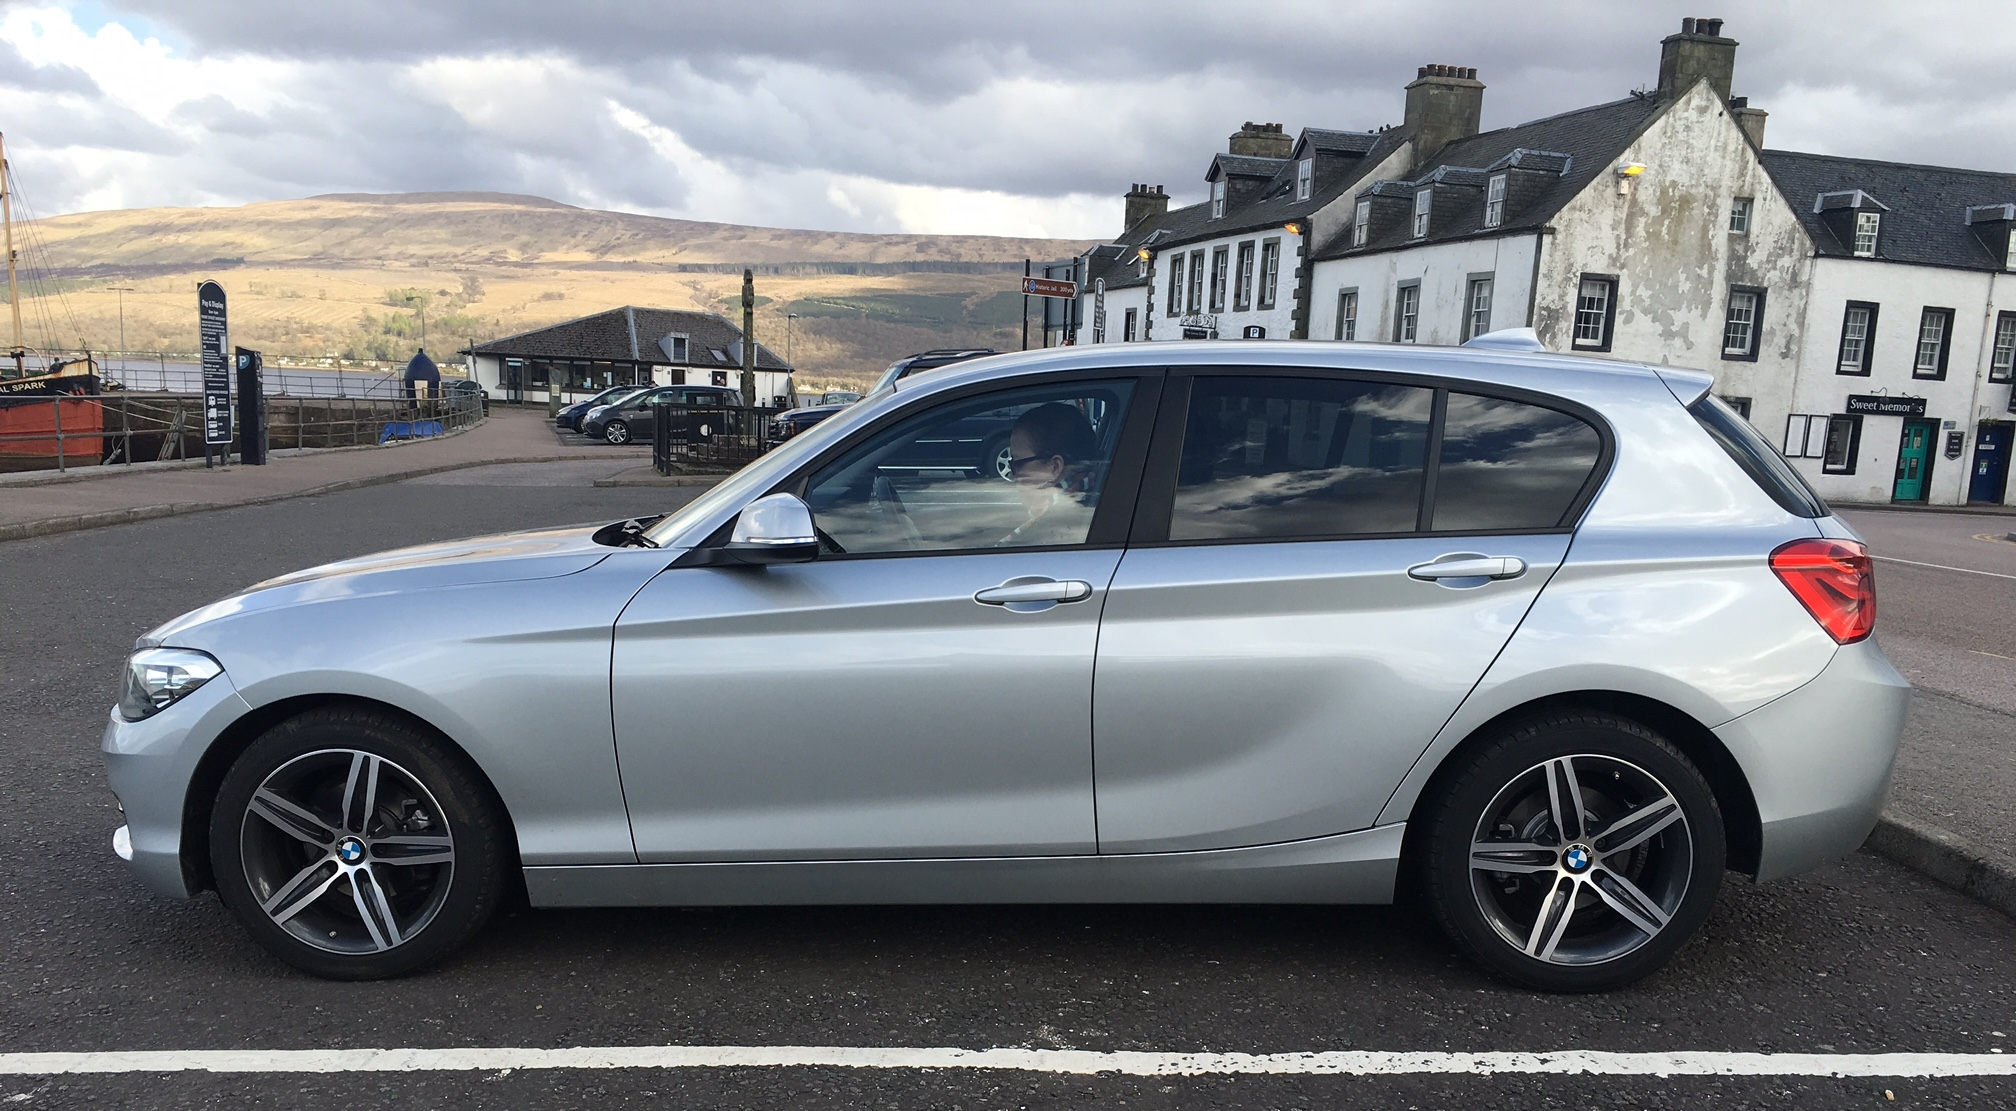 The 188i parked at Invergarry, home of the divine Loch Fyne Whiskies.